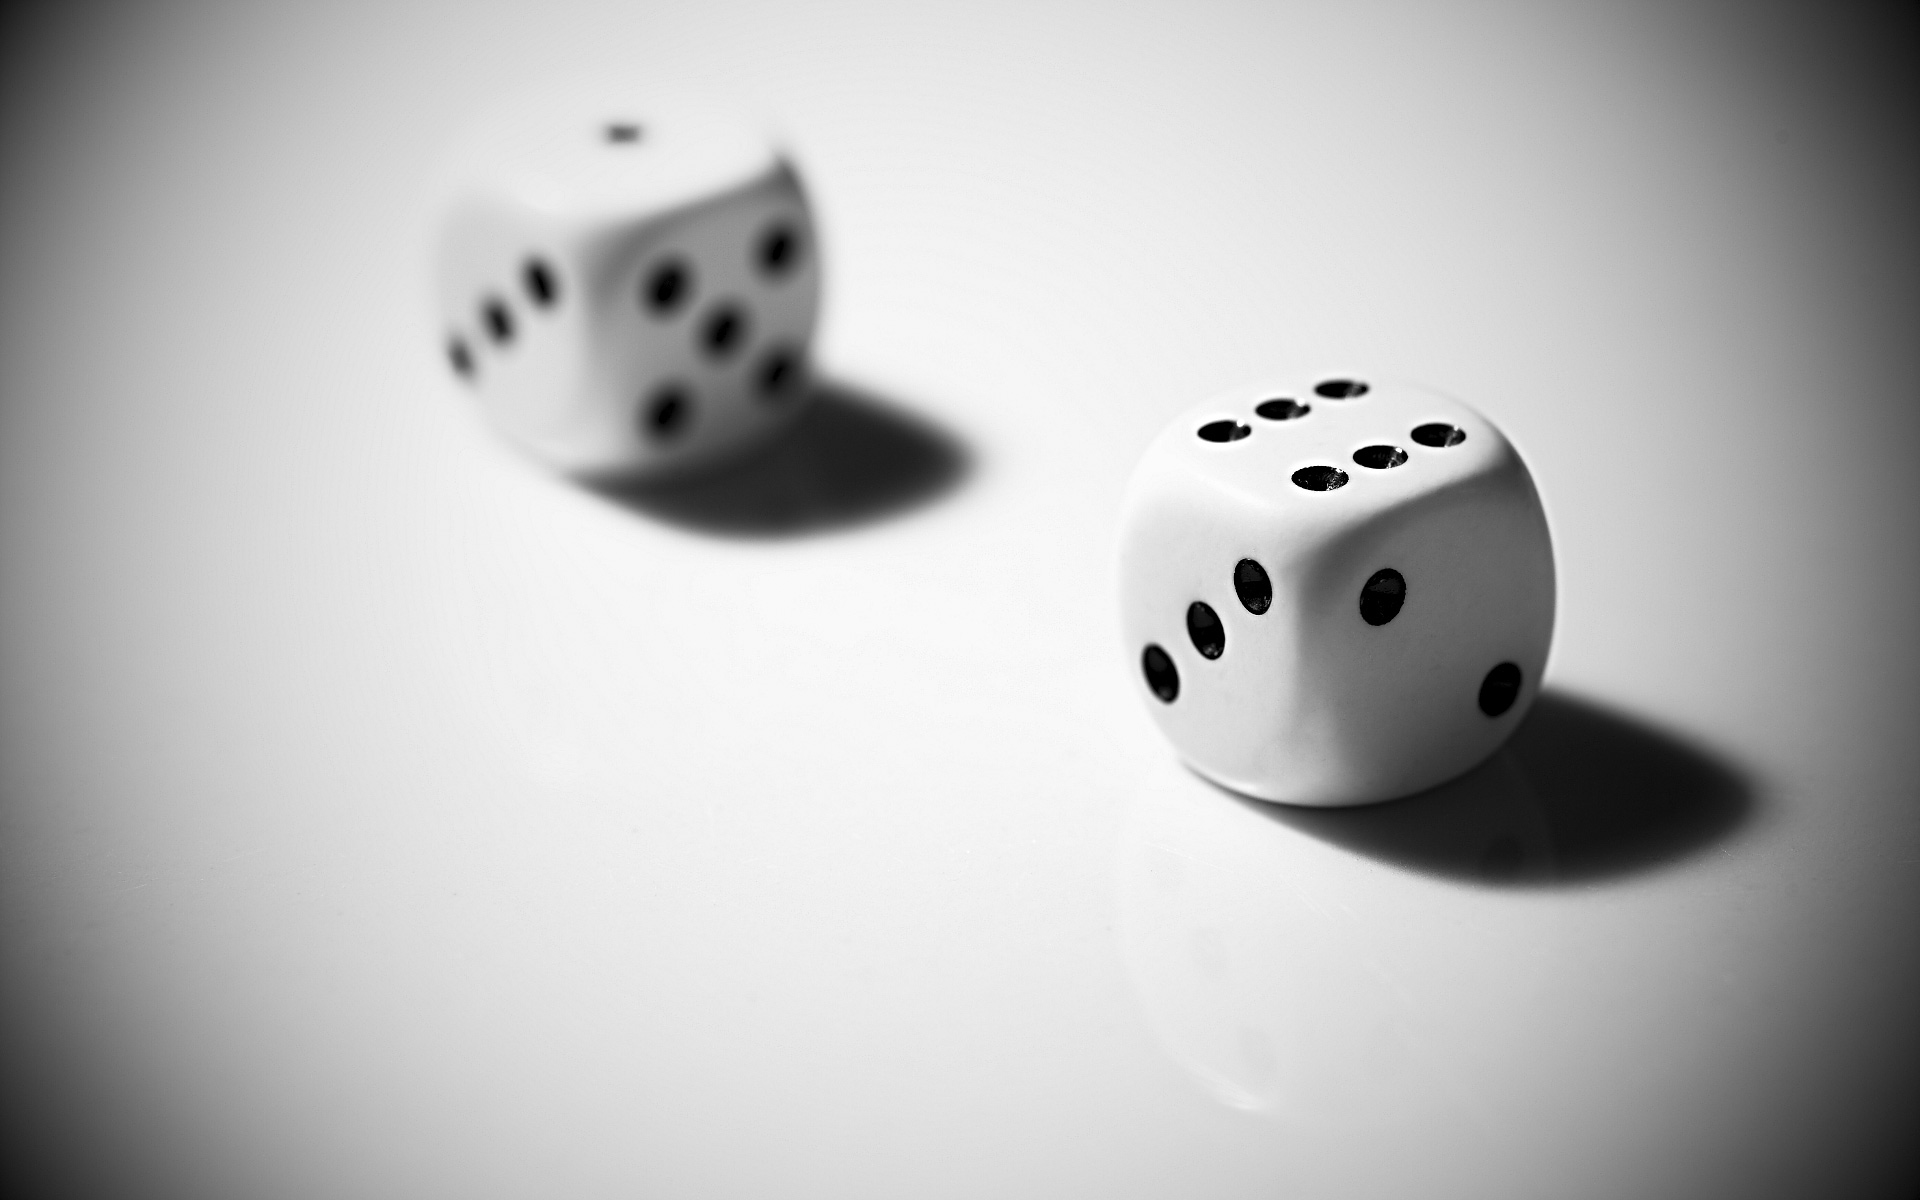 Dice Black and White Picture Wallpapers - 1920x1200 - 253663